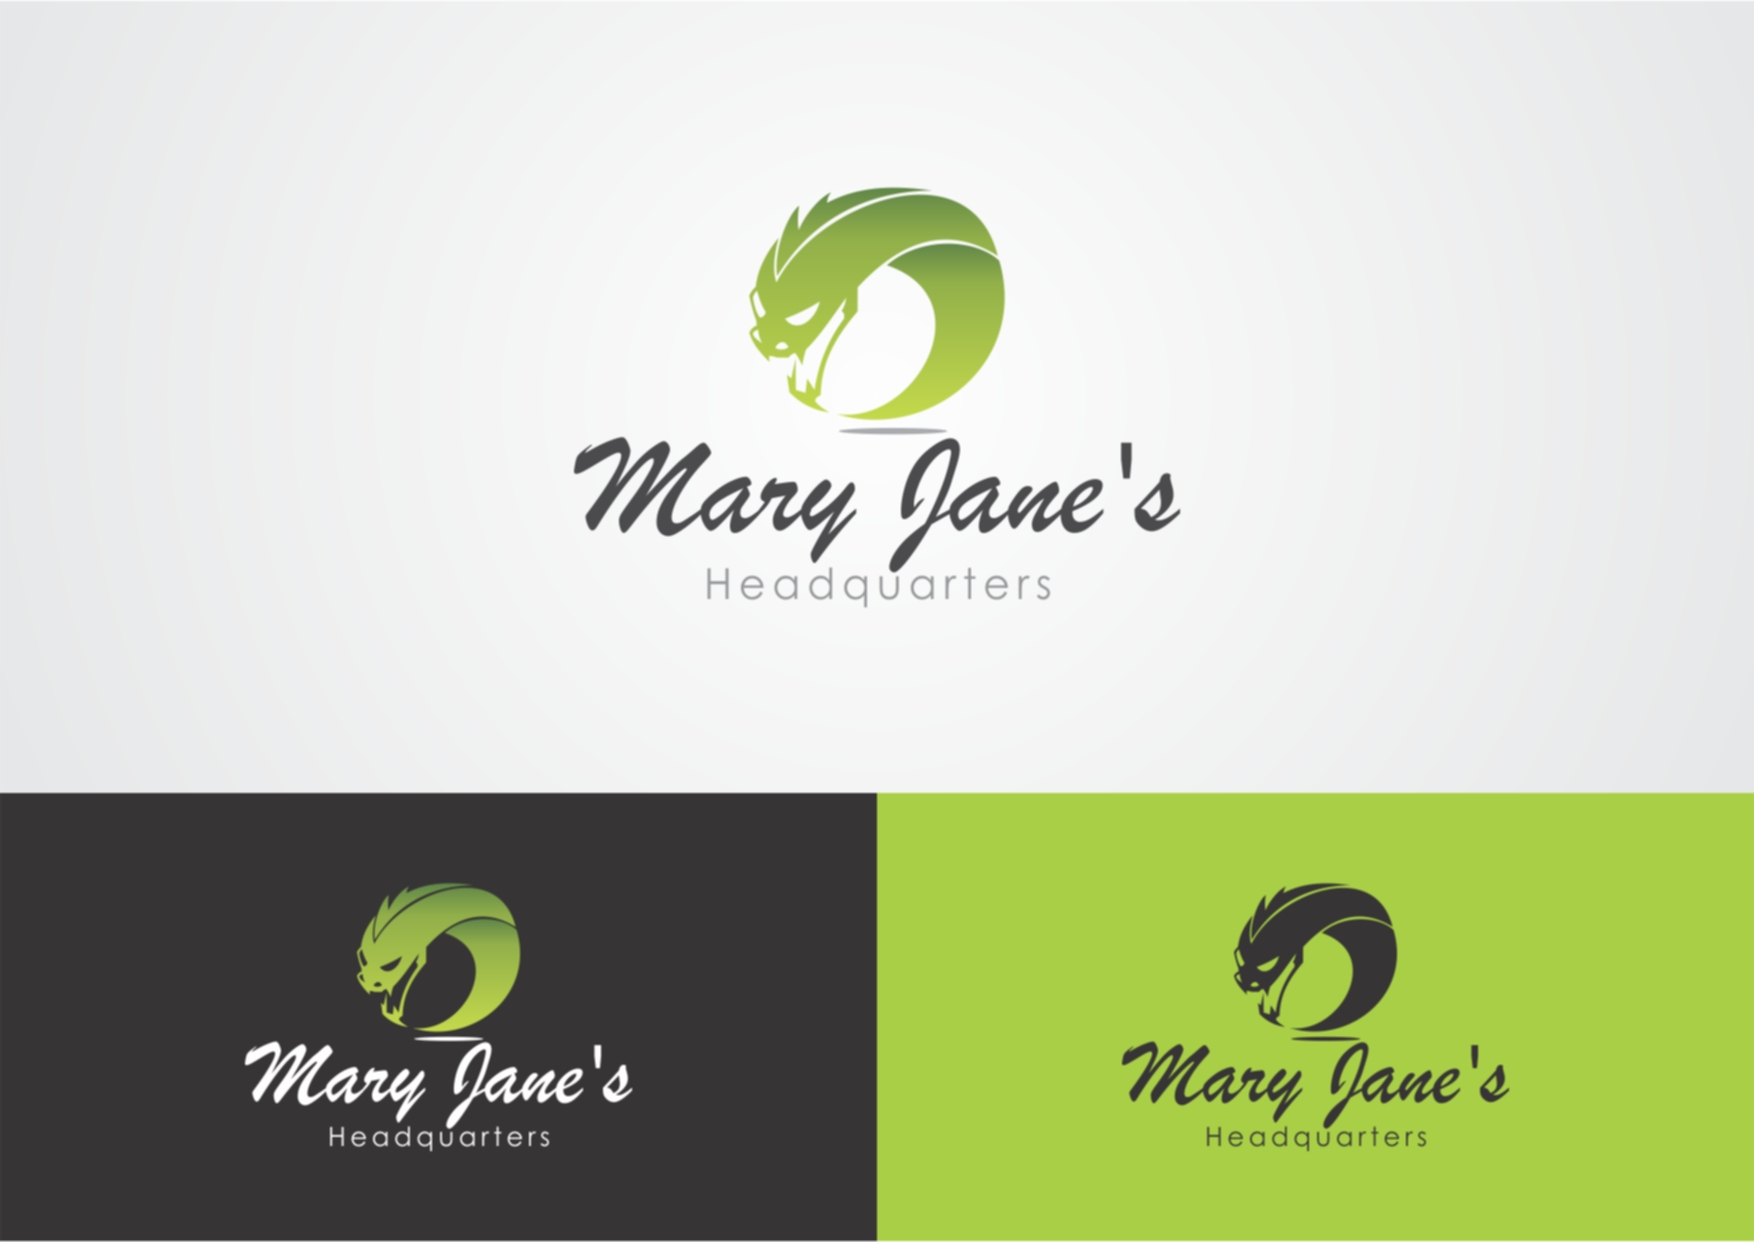 Logo Design by Private User - Entry No. 26 in the Logo Design Contest Mary Jane's Headquarters Logo Design.